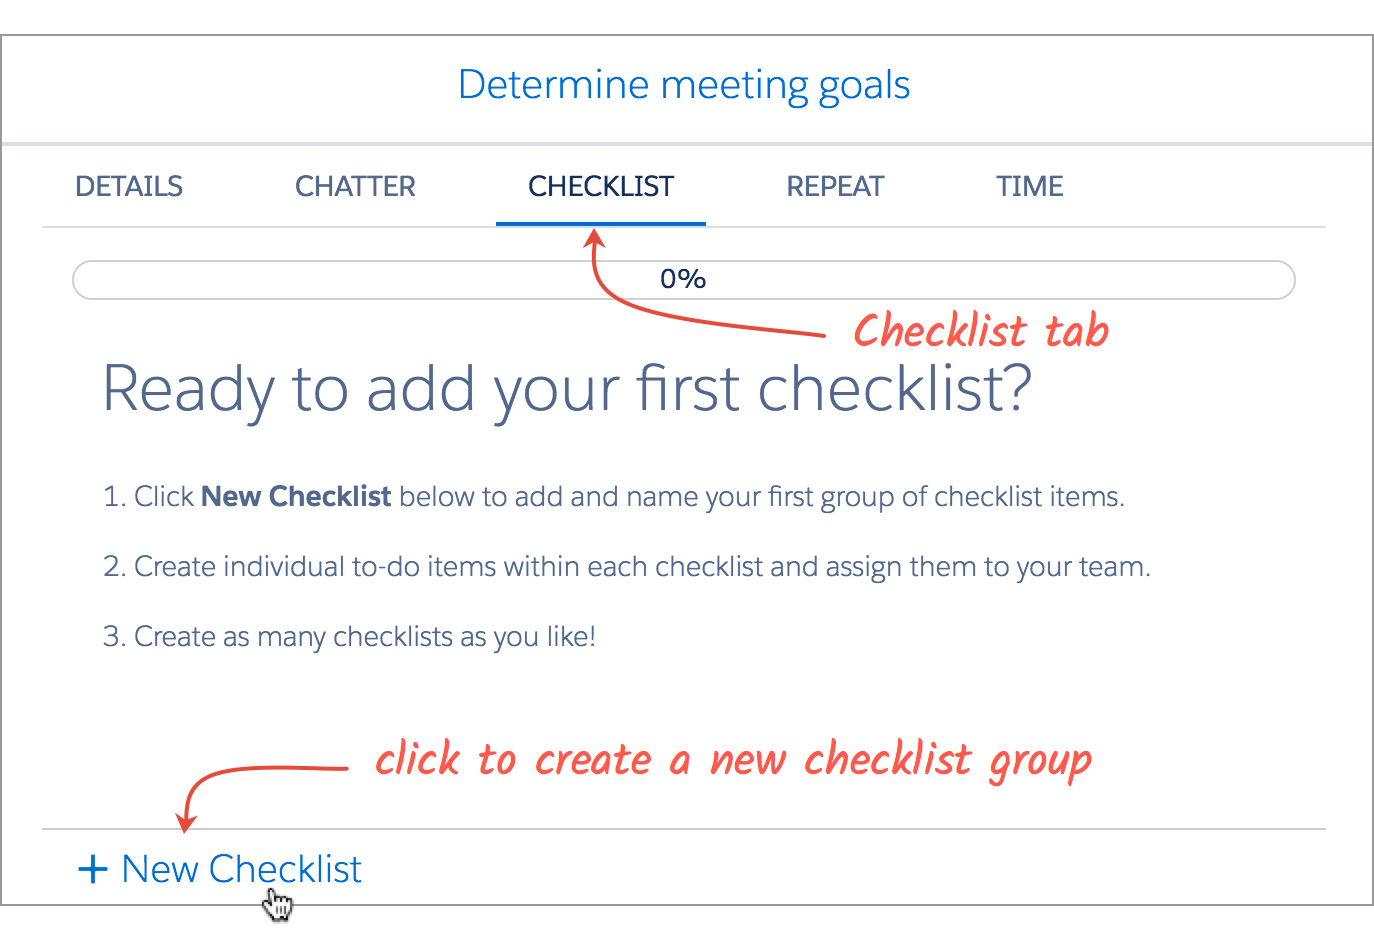 create_new_checklist_group.png